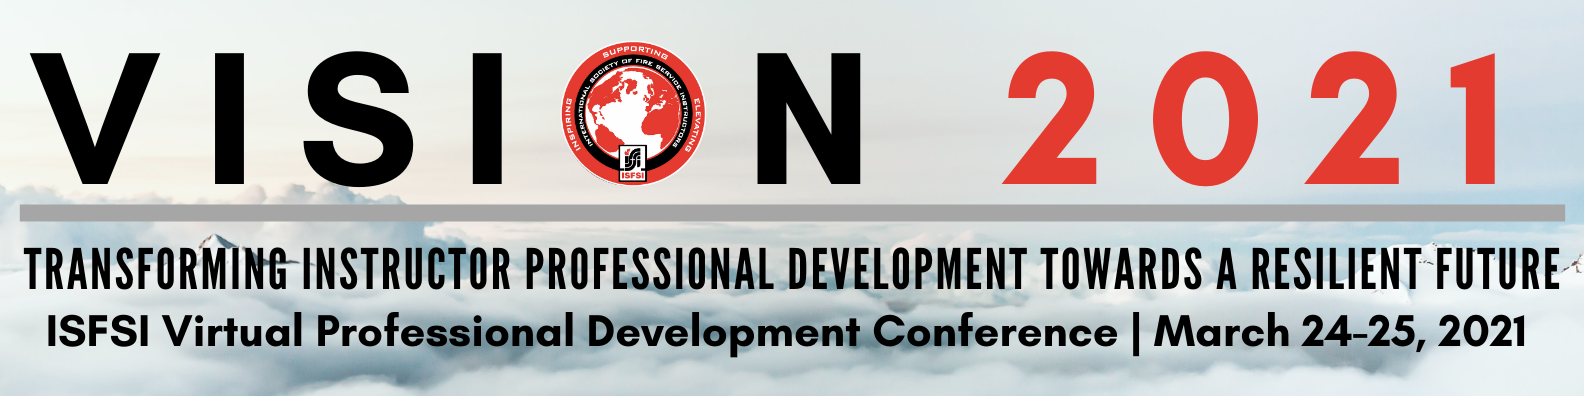 Vision 2021 Instructor Professional Development Conference